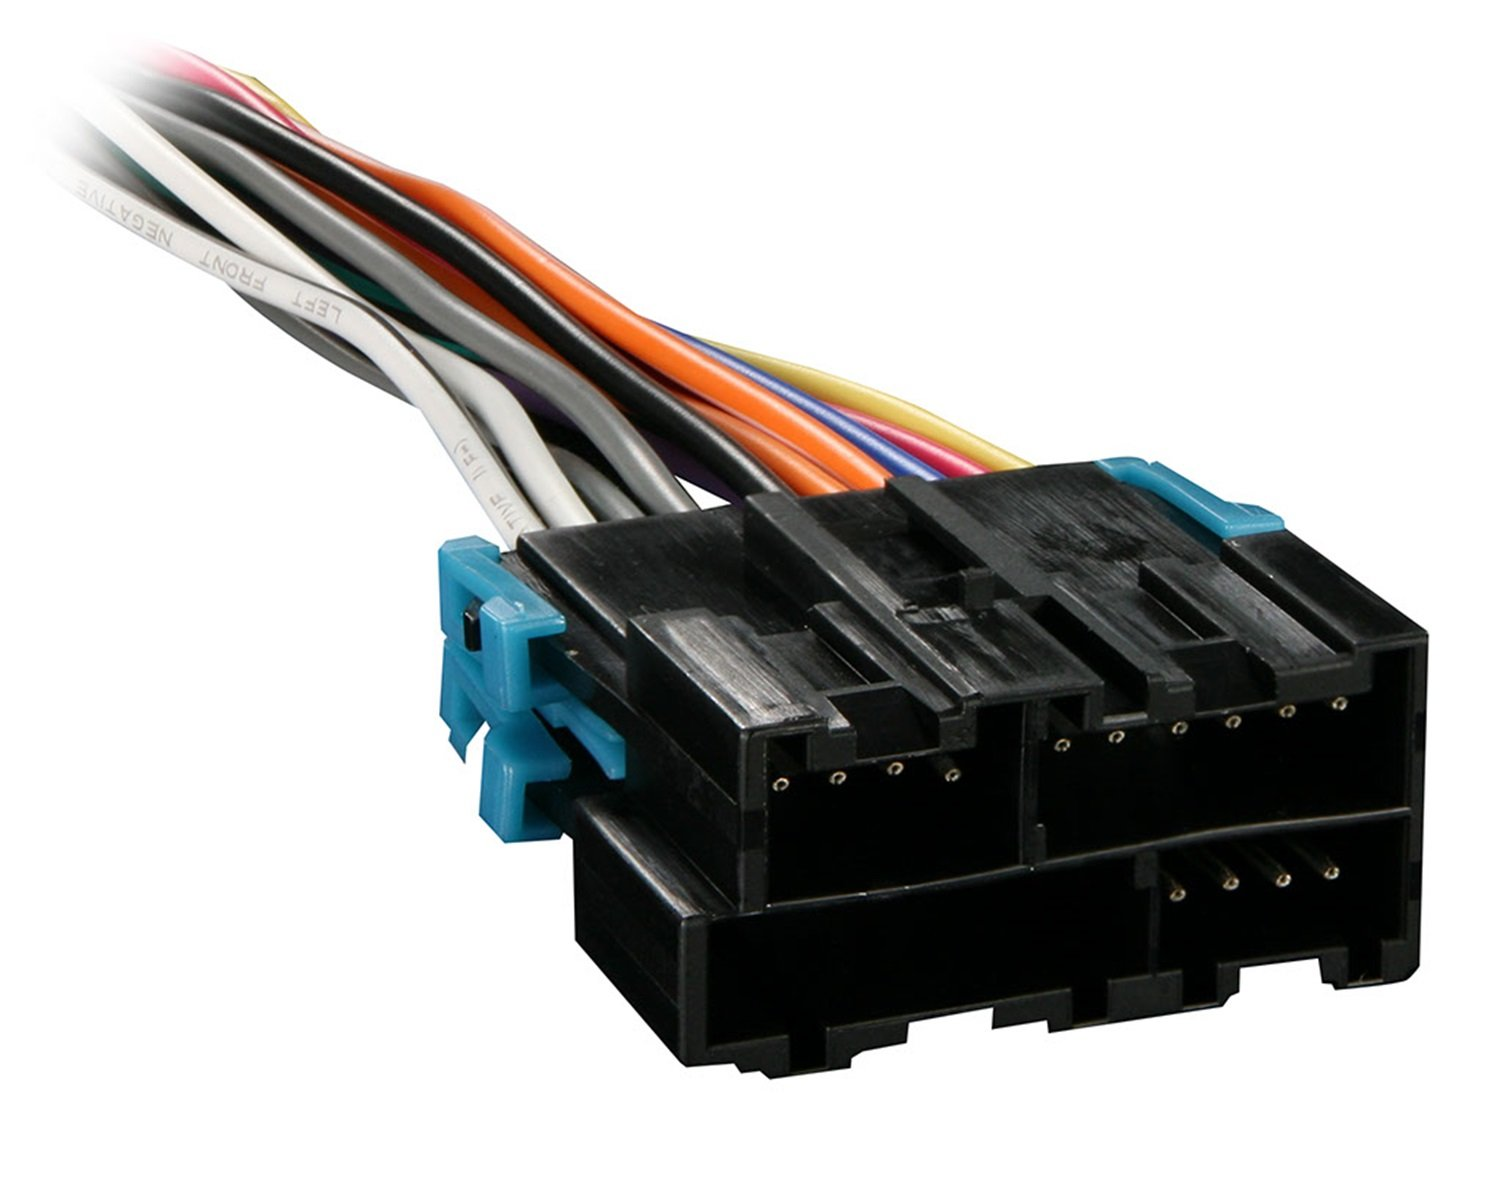 61 CwjZt1hL._SL1500_ radio wiring harnesses amazon com Yanmar YM2500 Manual at reclaimingppi.co